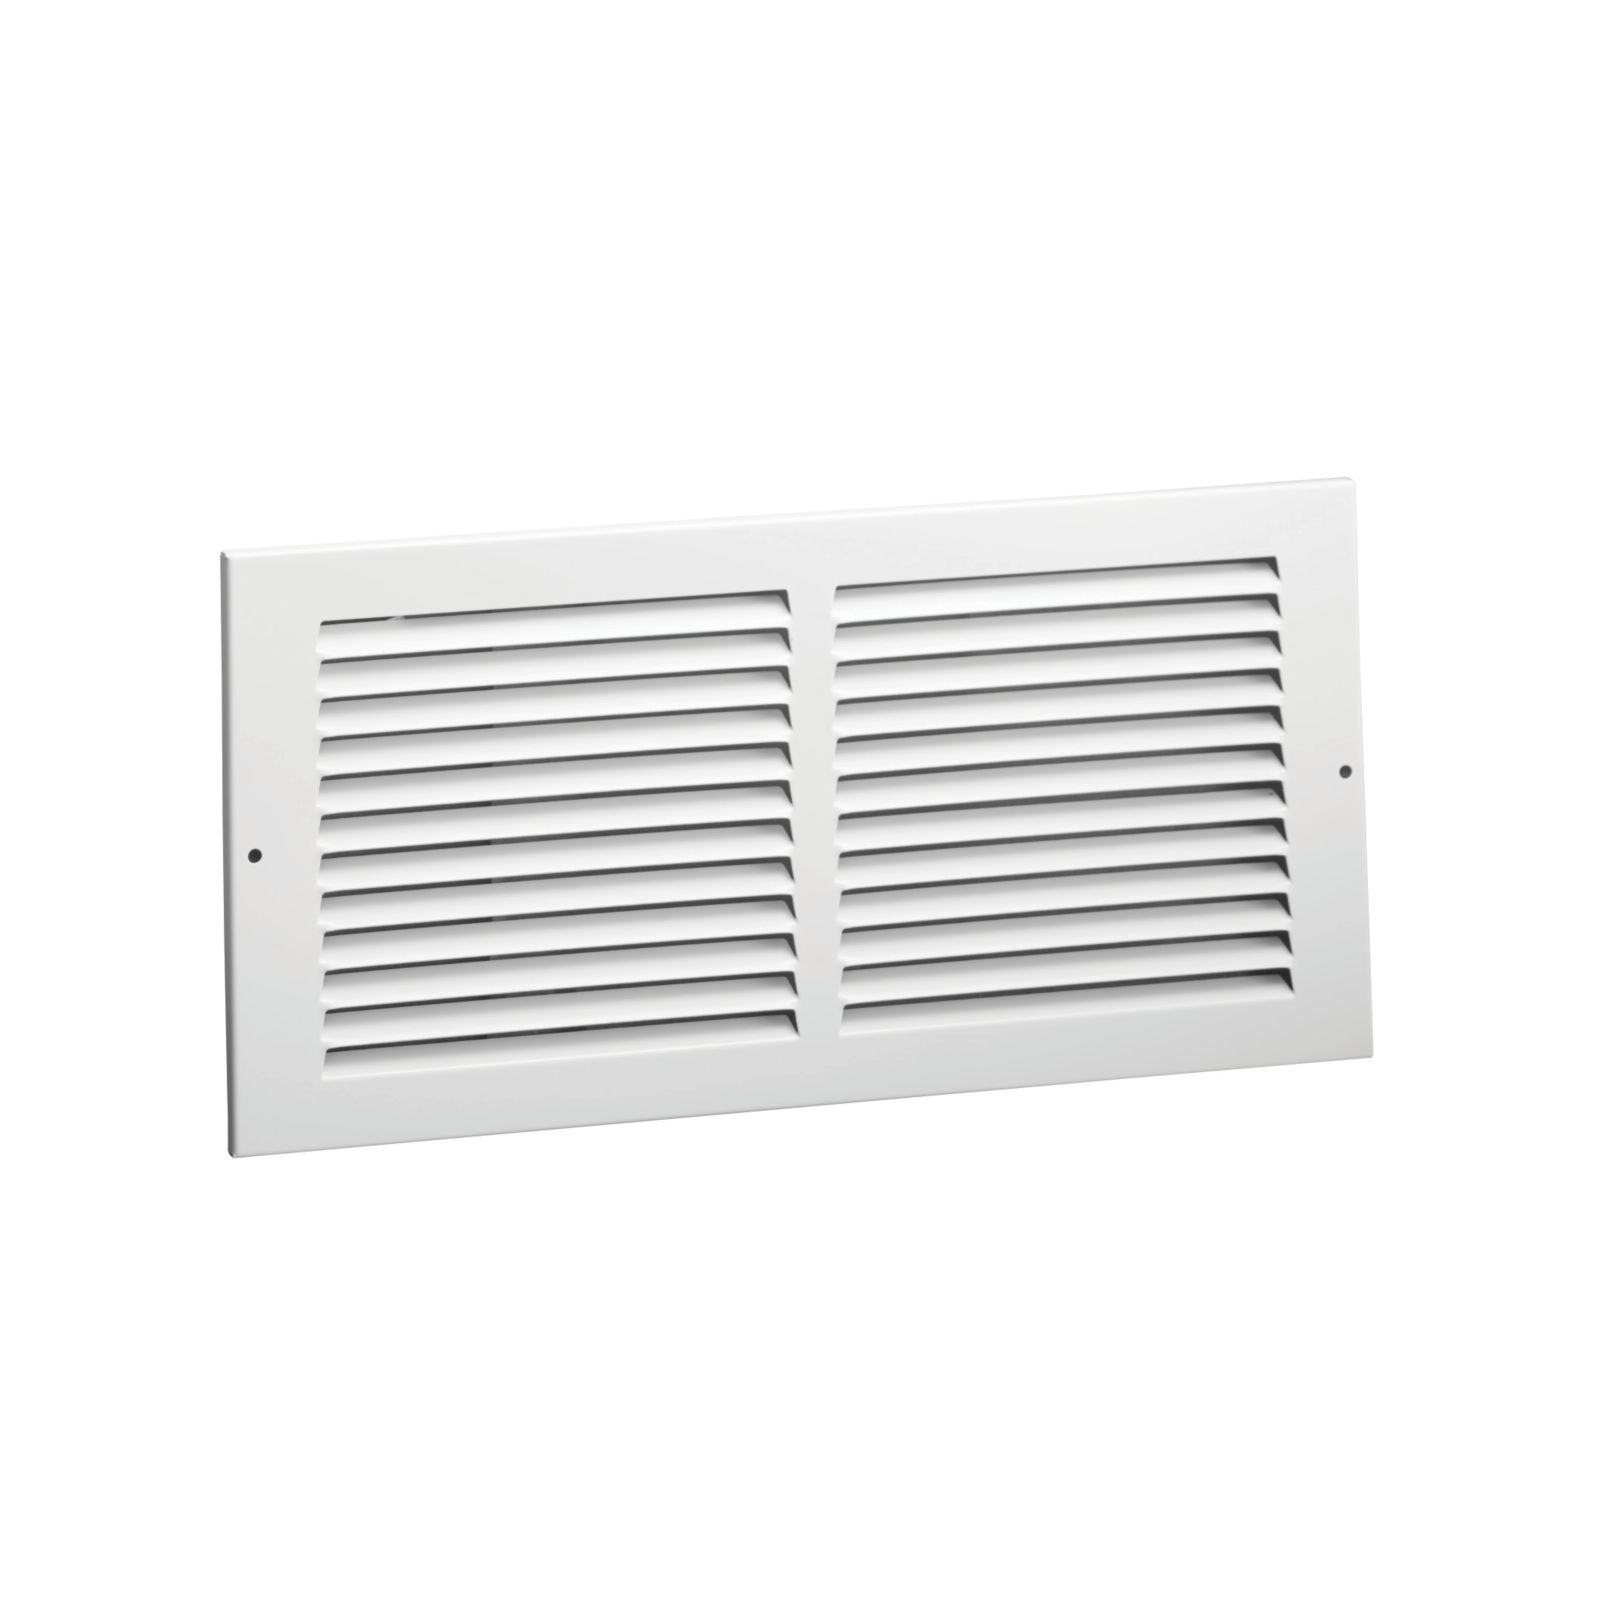 "Hart & Cooley 043355 - #672 Steel Return Air Grille, White Finish, 20"" X 16"""